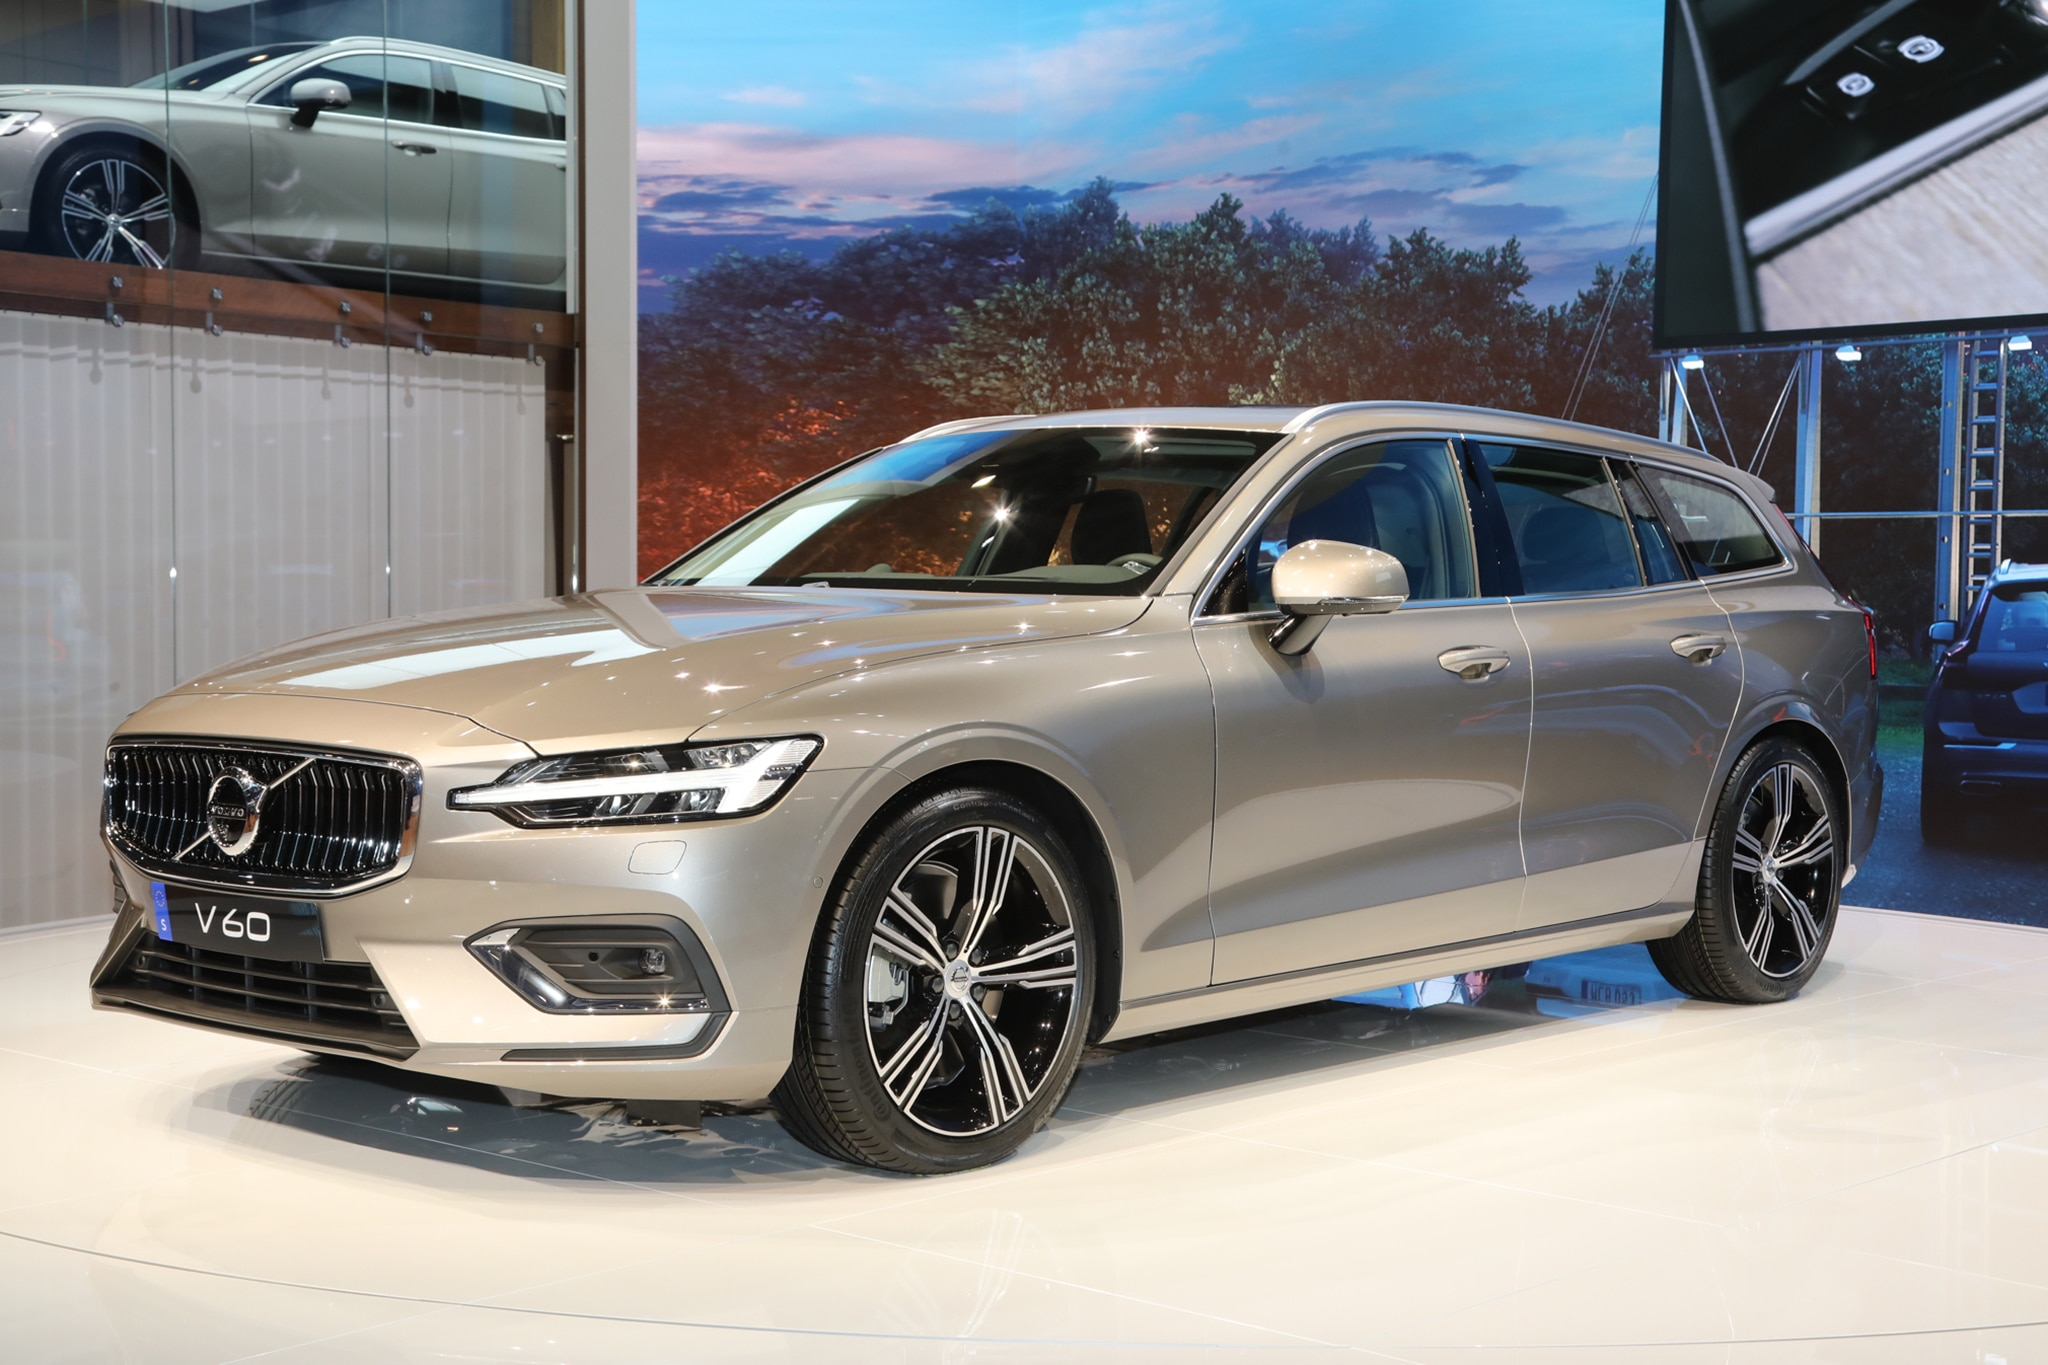 2019 volvo v60 joins the geneva auto show automobile. Black Bedroom Furniture Sets. Home Design Ideas